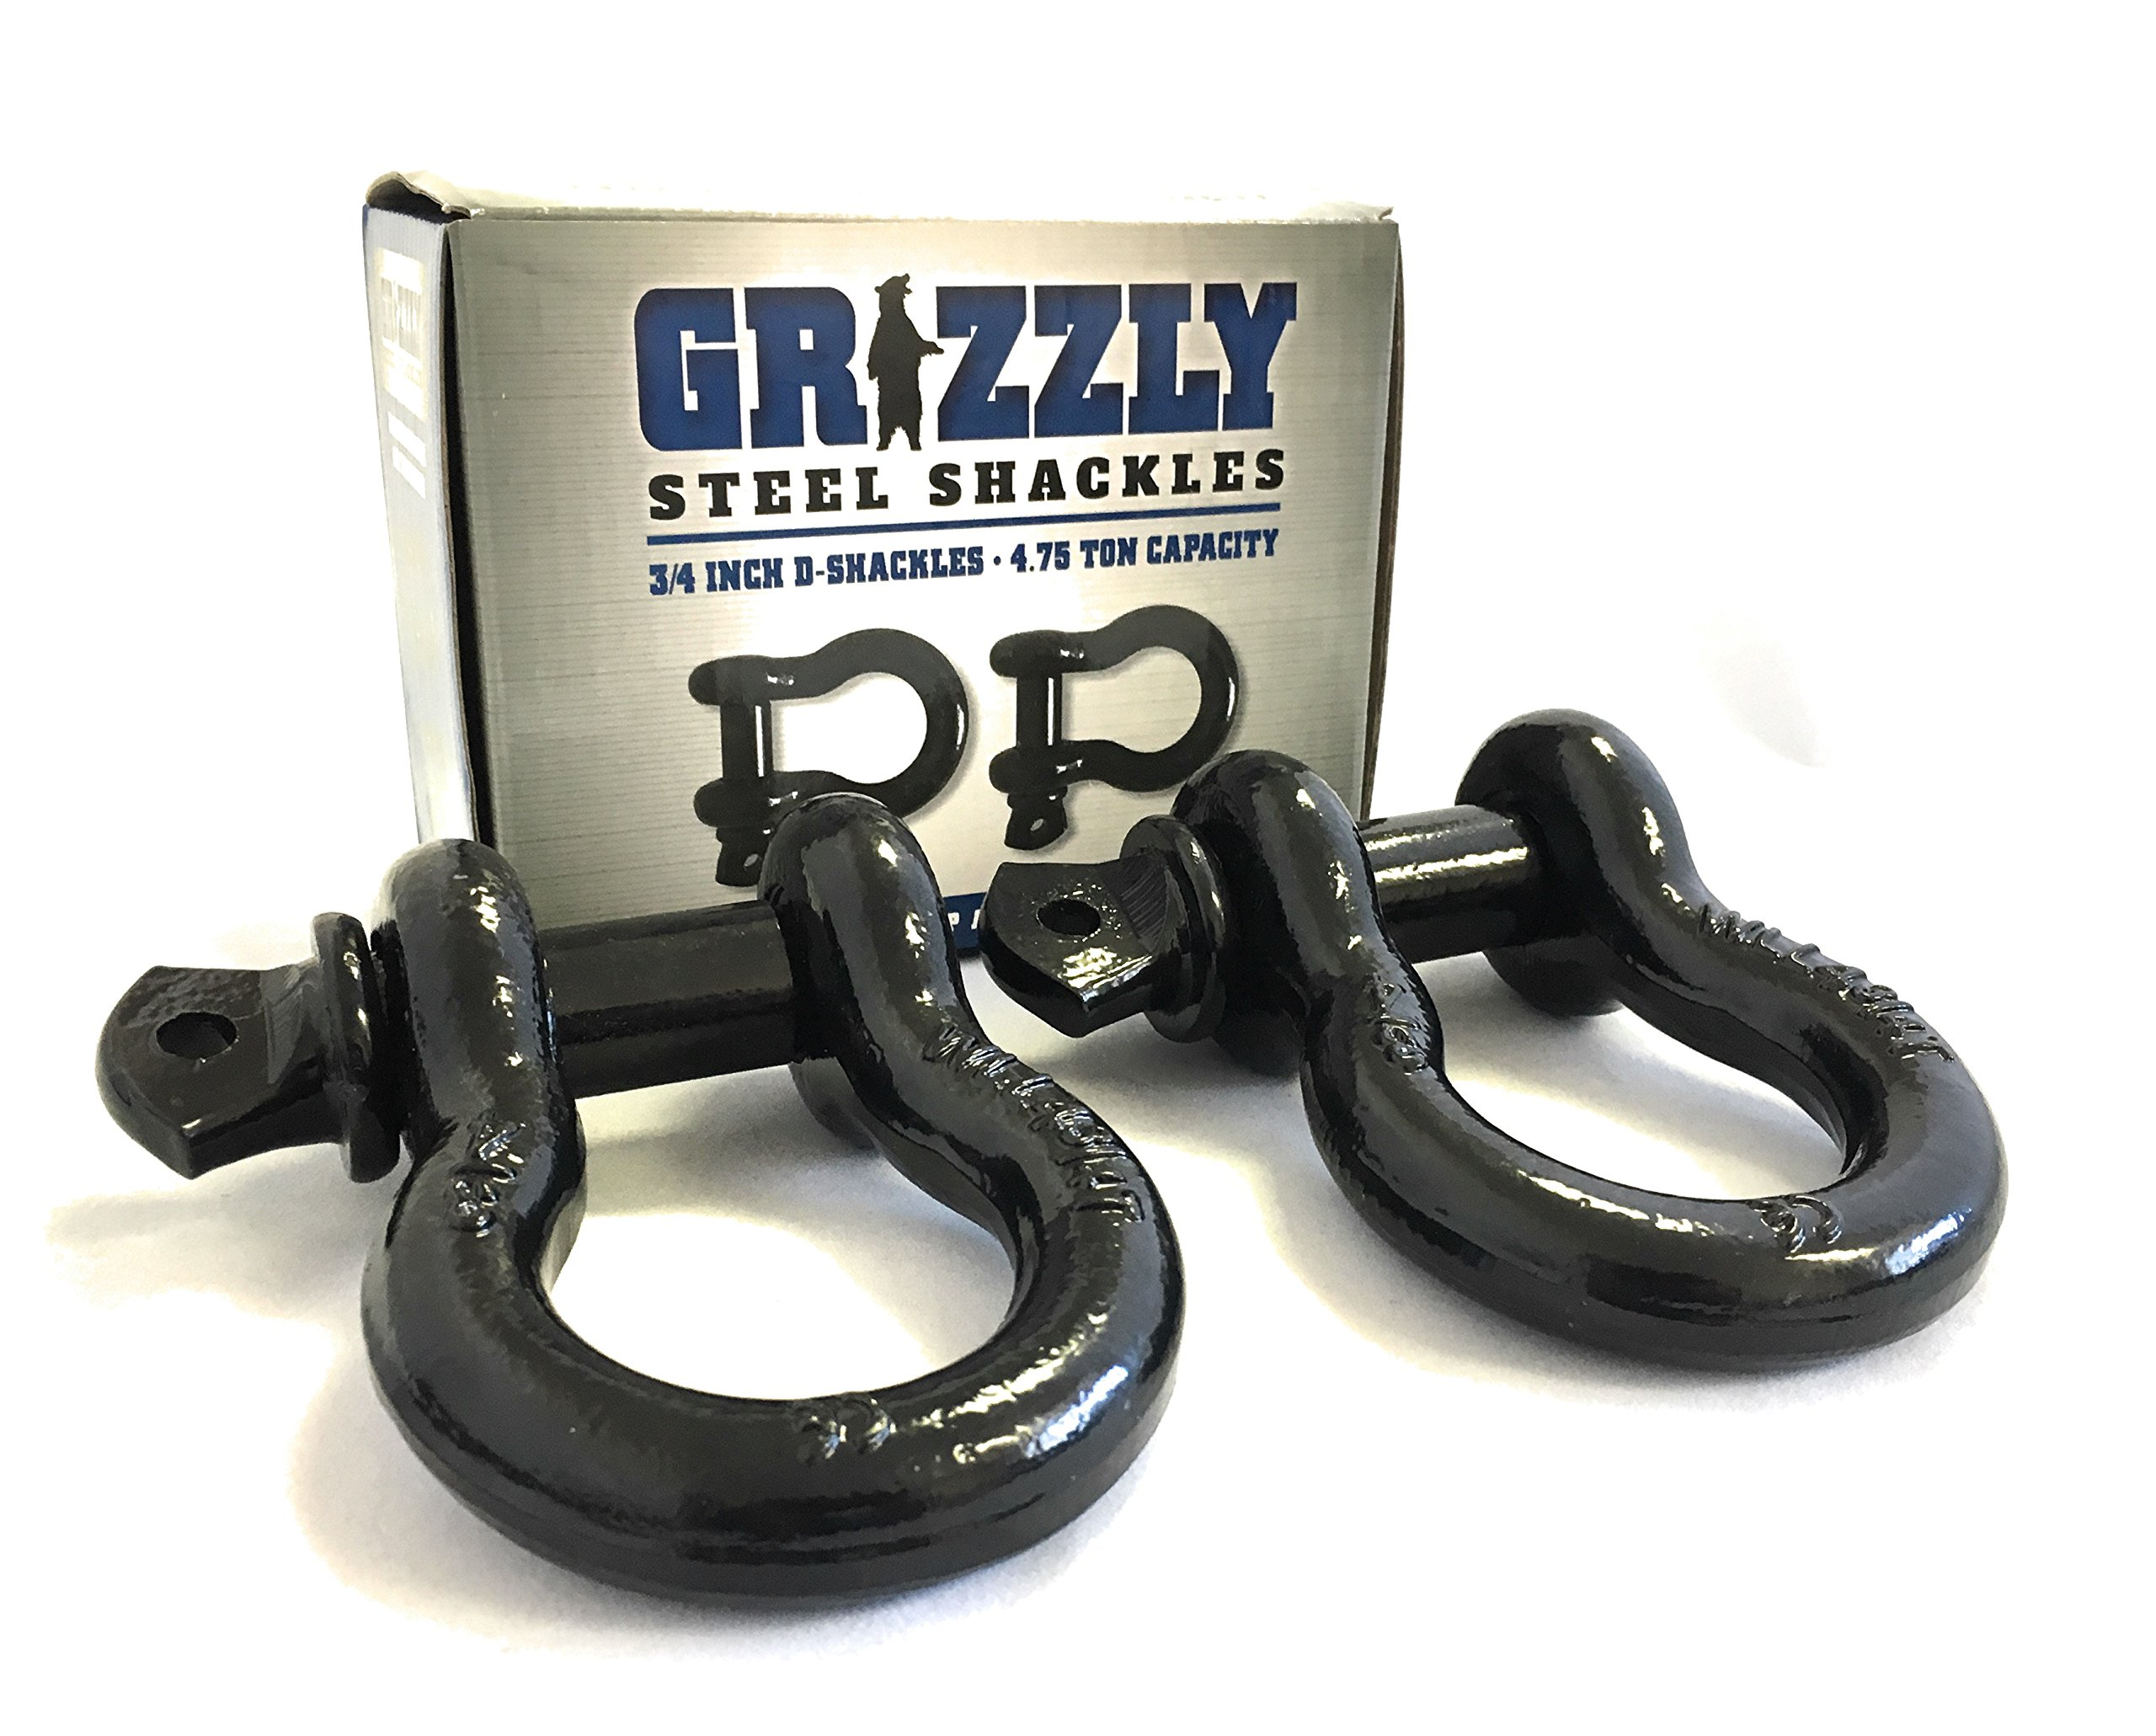 D Ring Shackles, 3/4 Inch, Black, 2 Pack – Heavy Duty Forged Steel with 4.75 Ton Capacity – Ideal for Jeeps, ATV's, Trucks to use with Recovery,Towing, Snatch Straps,Snatch Block,Tree Savers by Grizzly (Image #2)